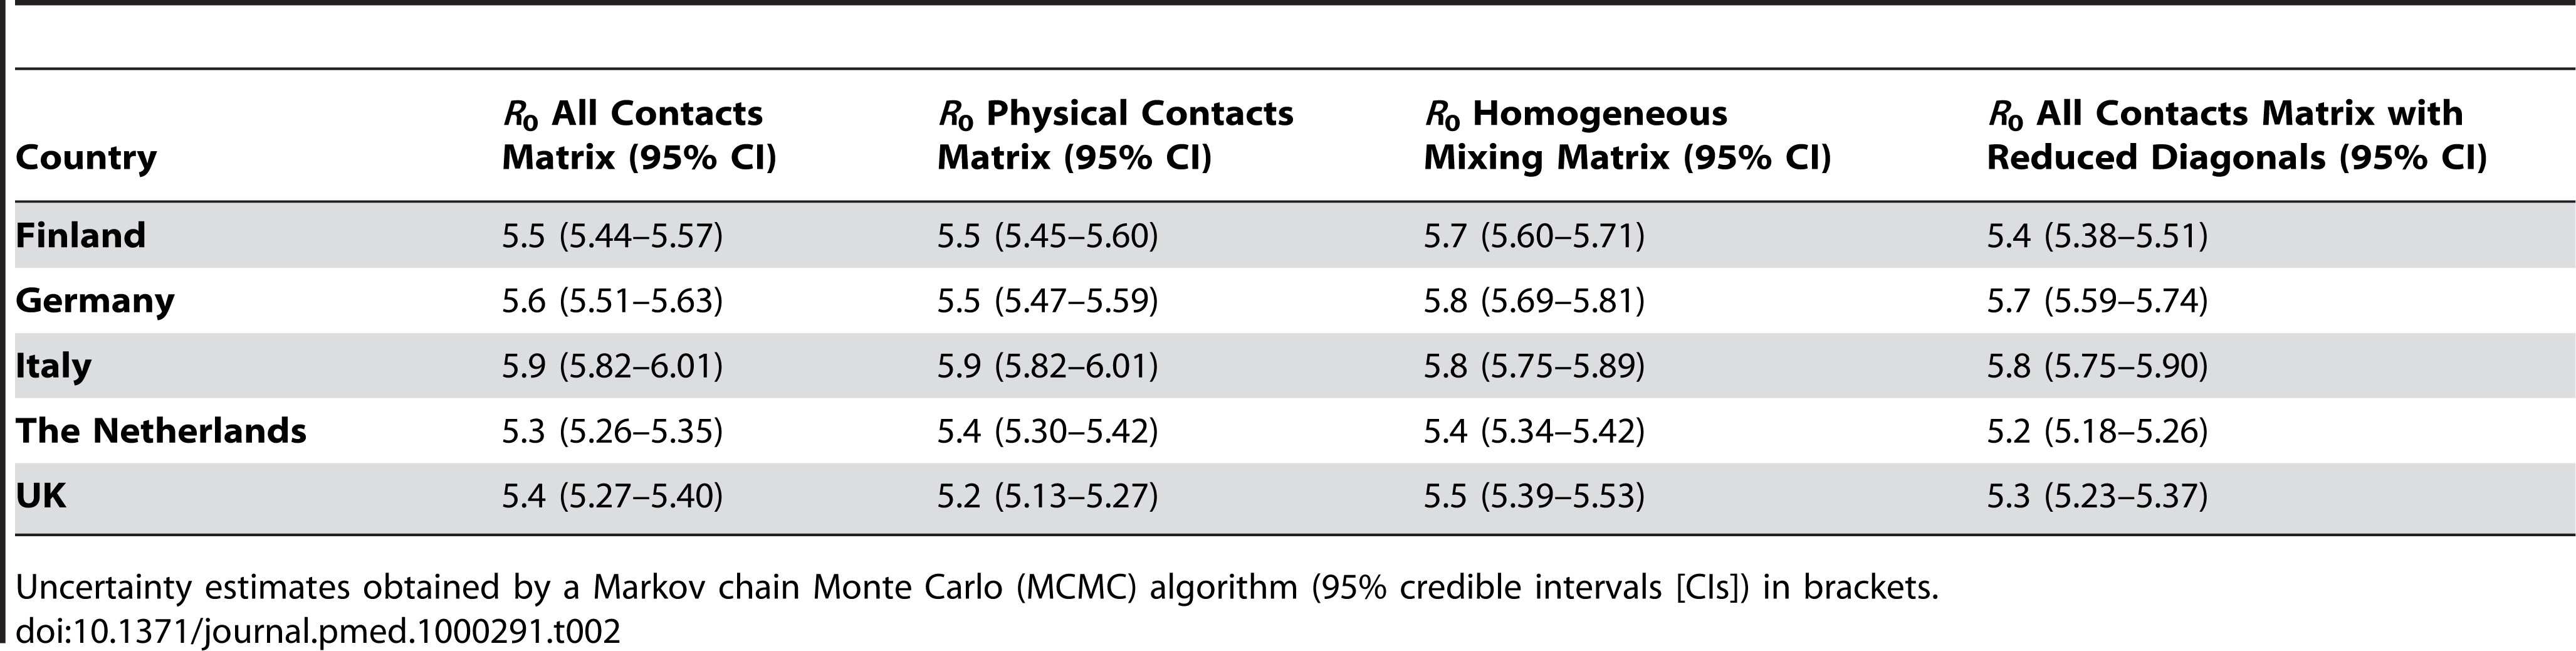 Estimates for the basic reproduction number (<i>R</i><sub>0</sub>) based on the matrices for all contacts, only physical contacts, and two different hypothetical matrices.